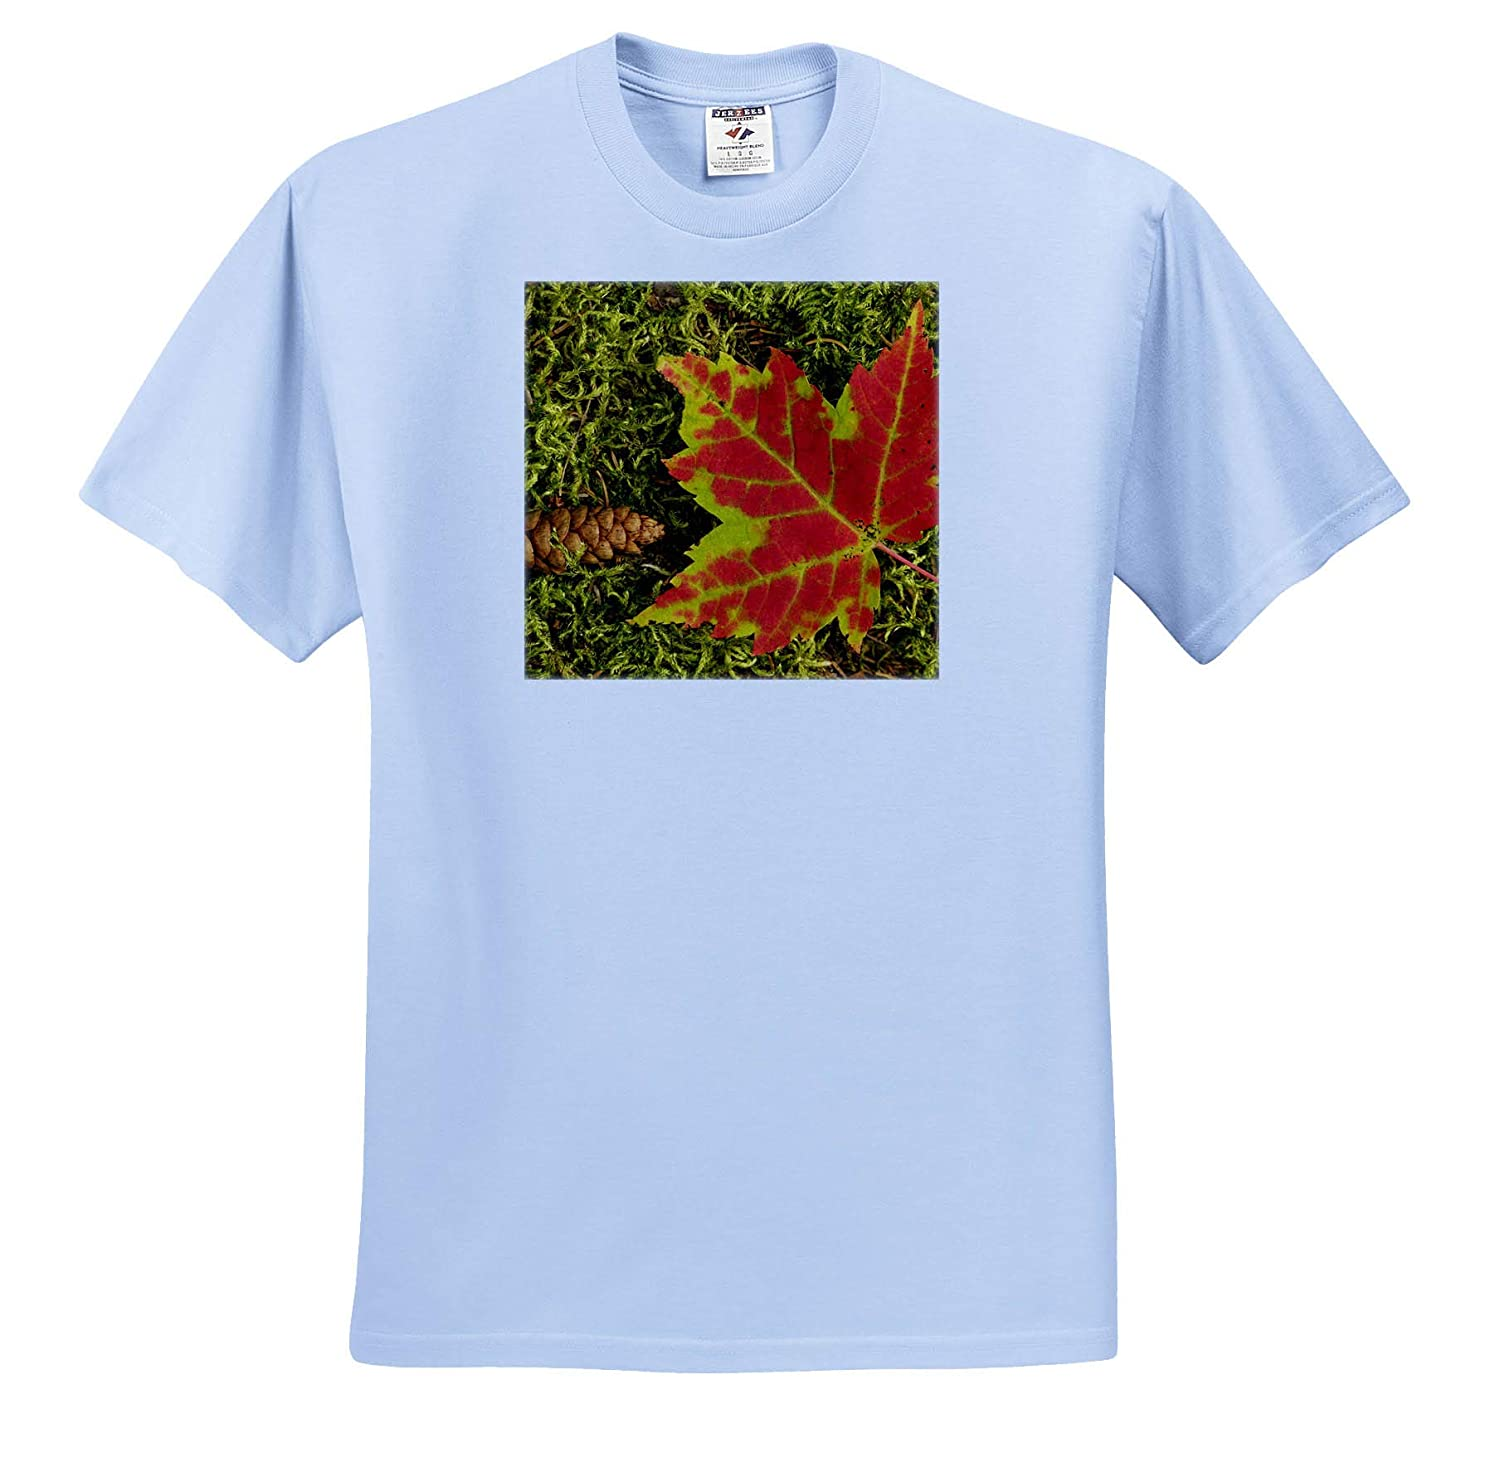 - Adult T-Shirt XL ts/_314854 Close-up of Maple Leaf and Pine Cone on Moss Autumn 3dRose Danita Delimont